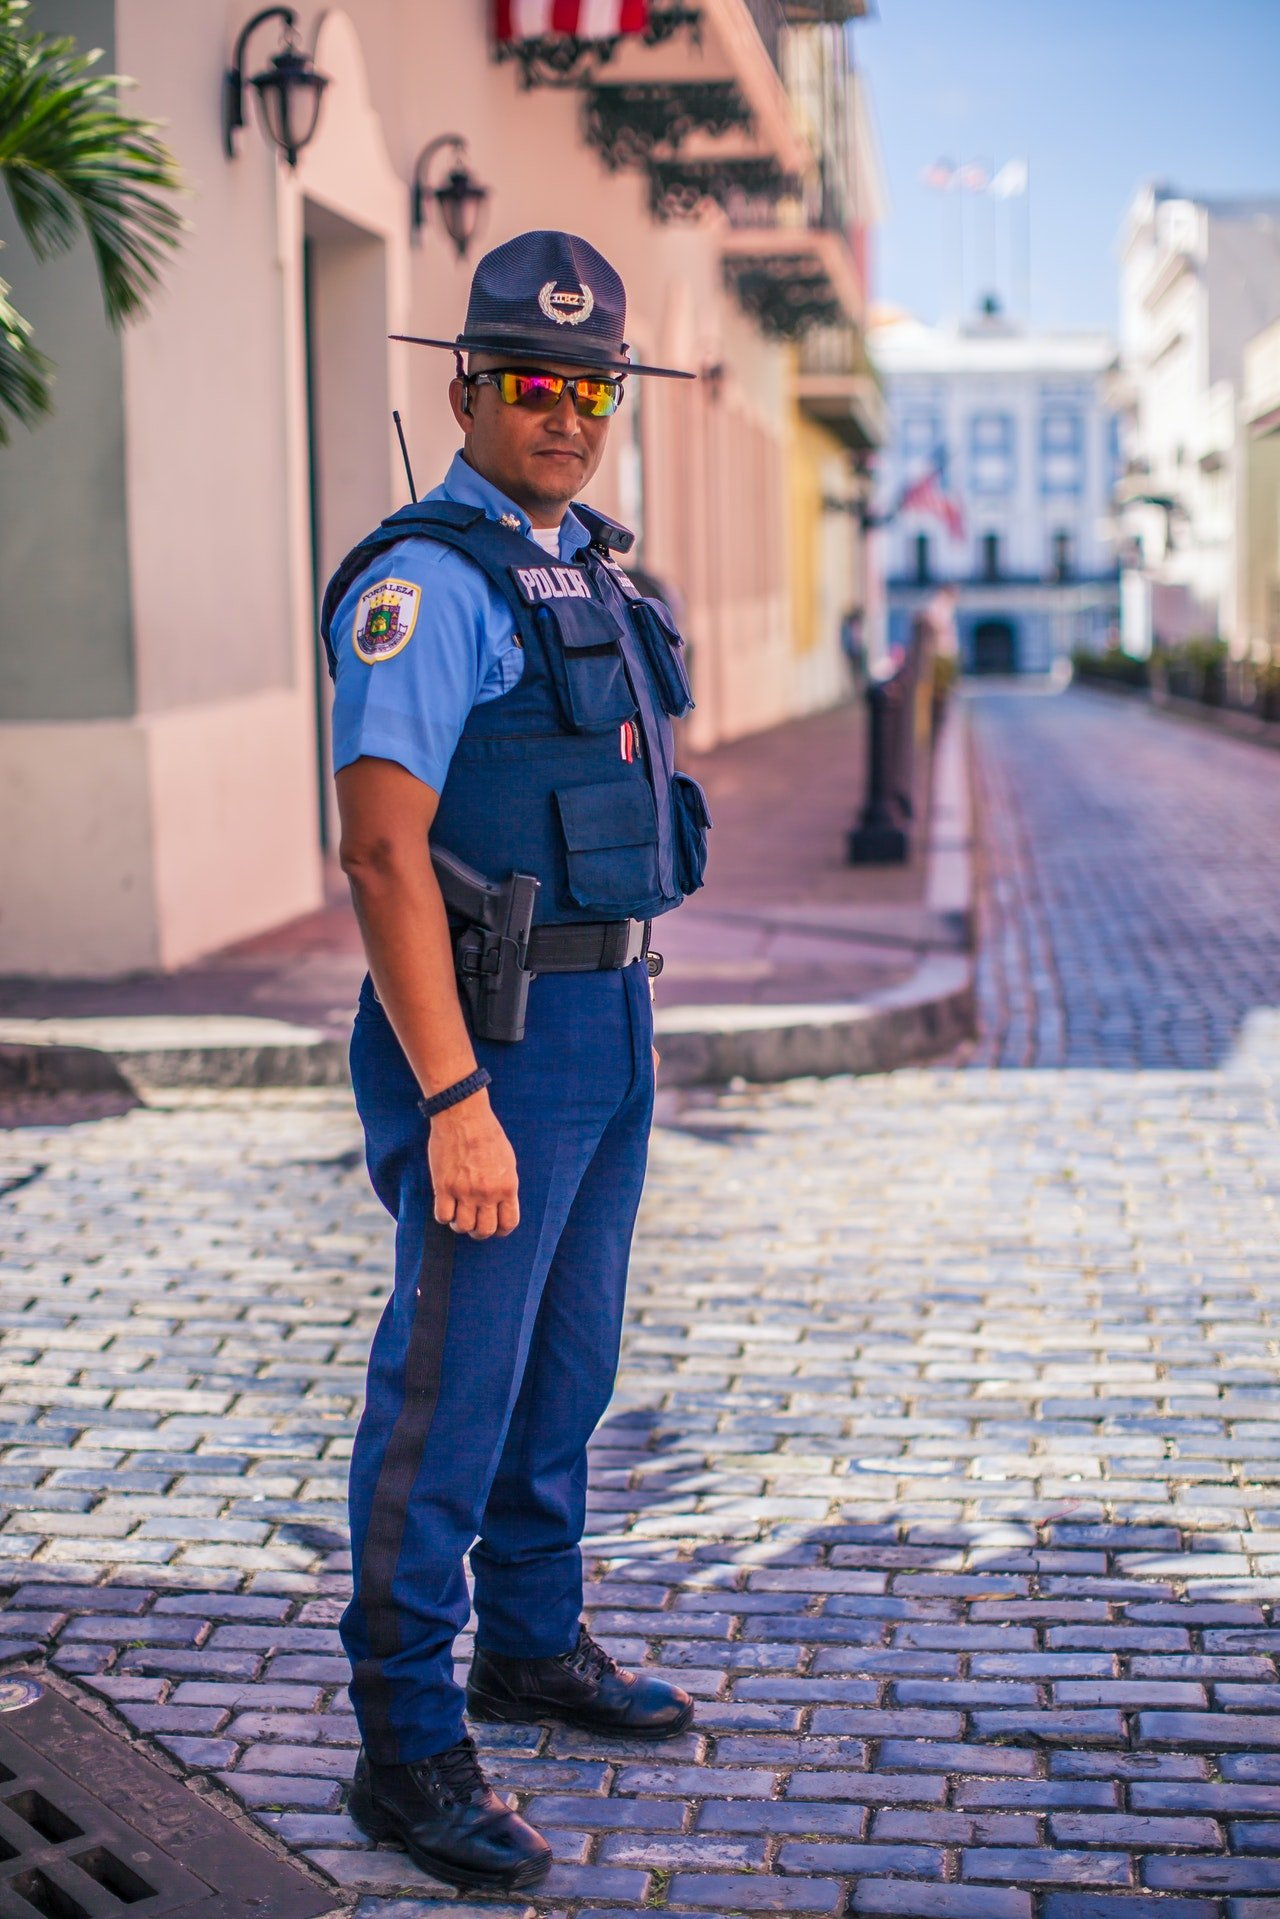 Photo of a fully kitted police officer   Photo: Pexels